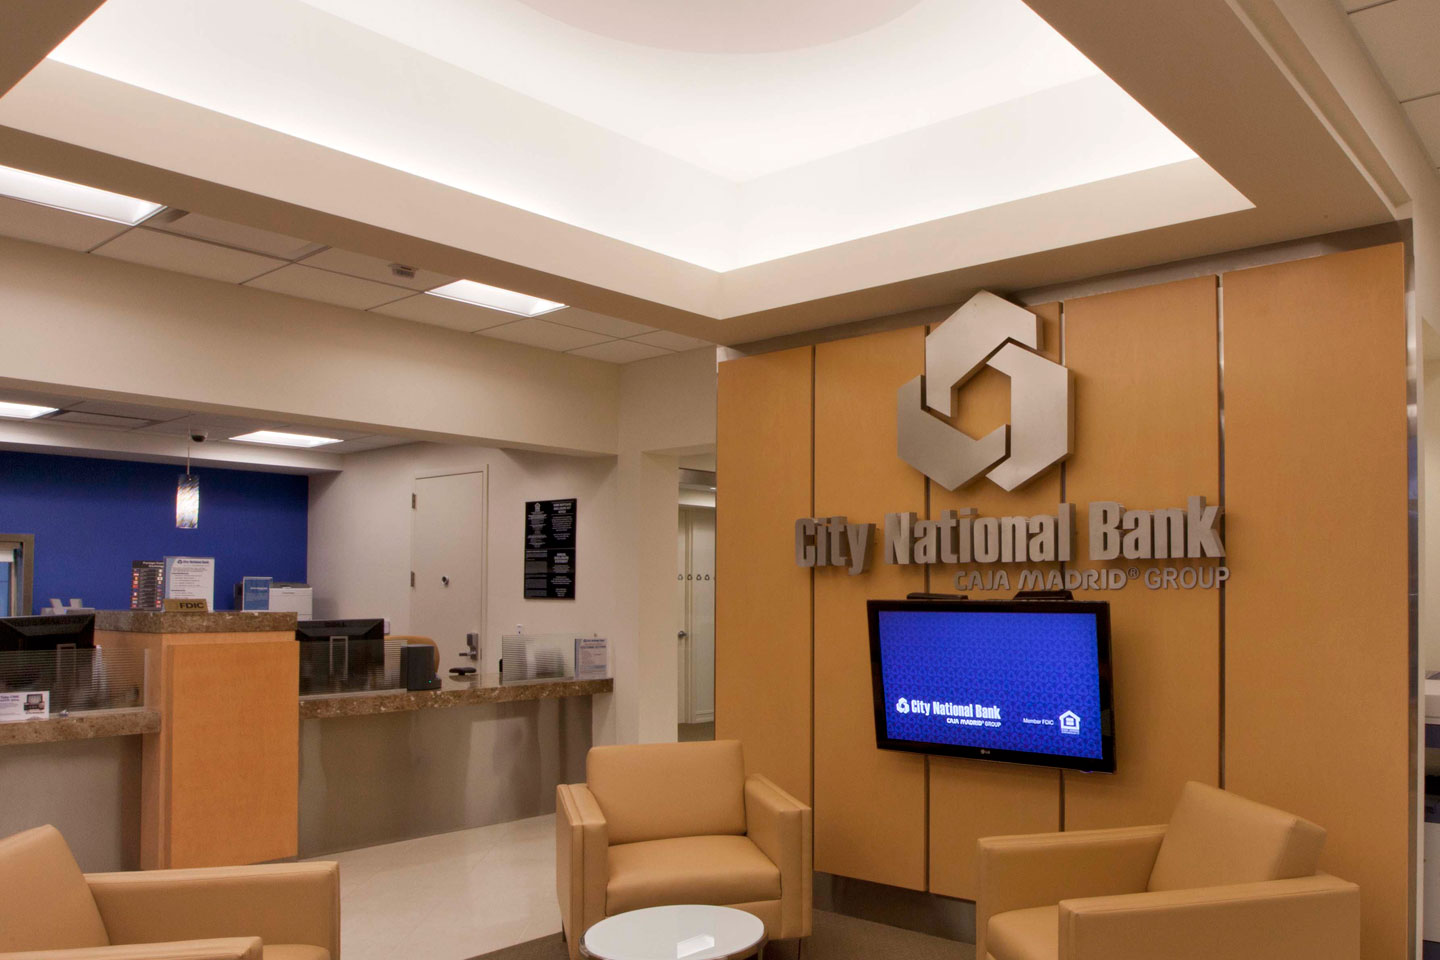 interior shot of the city national bank